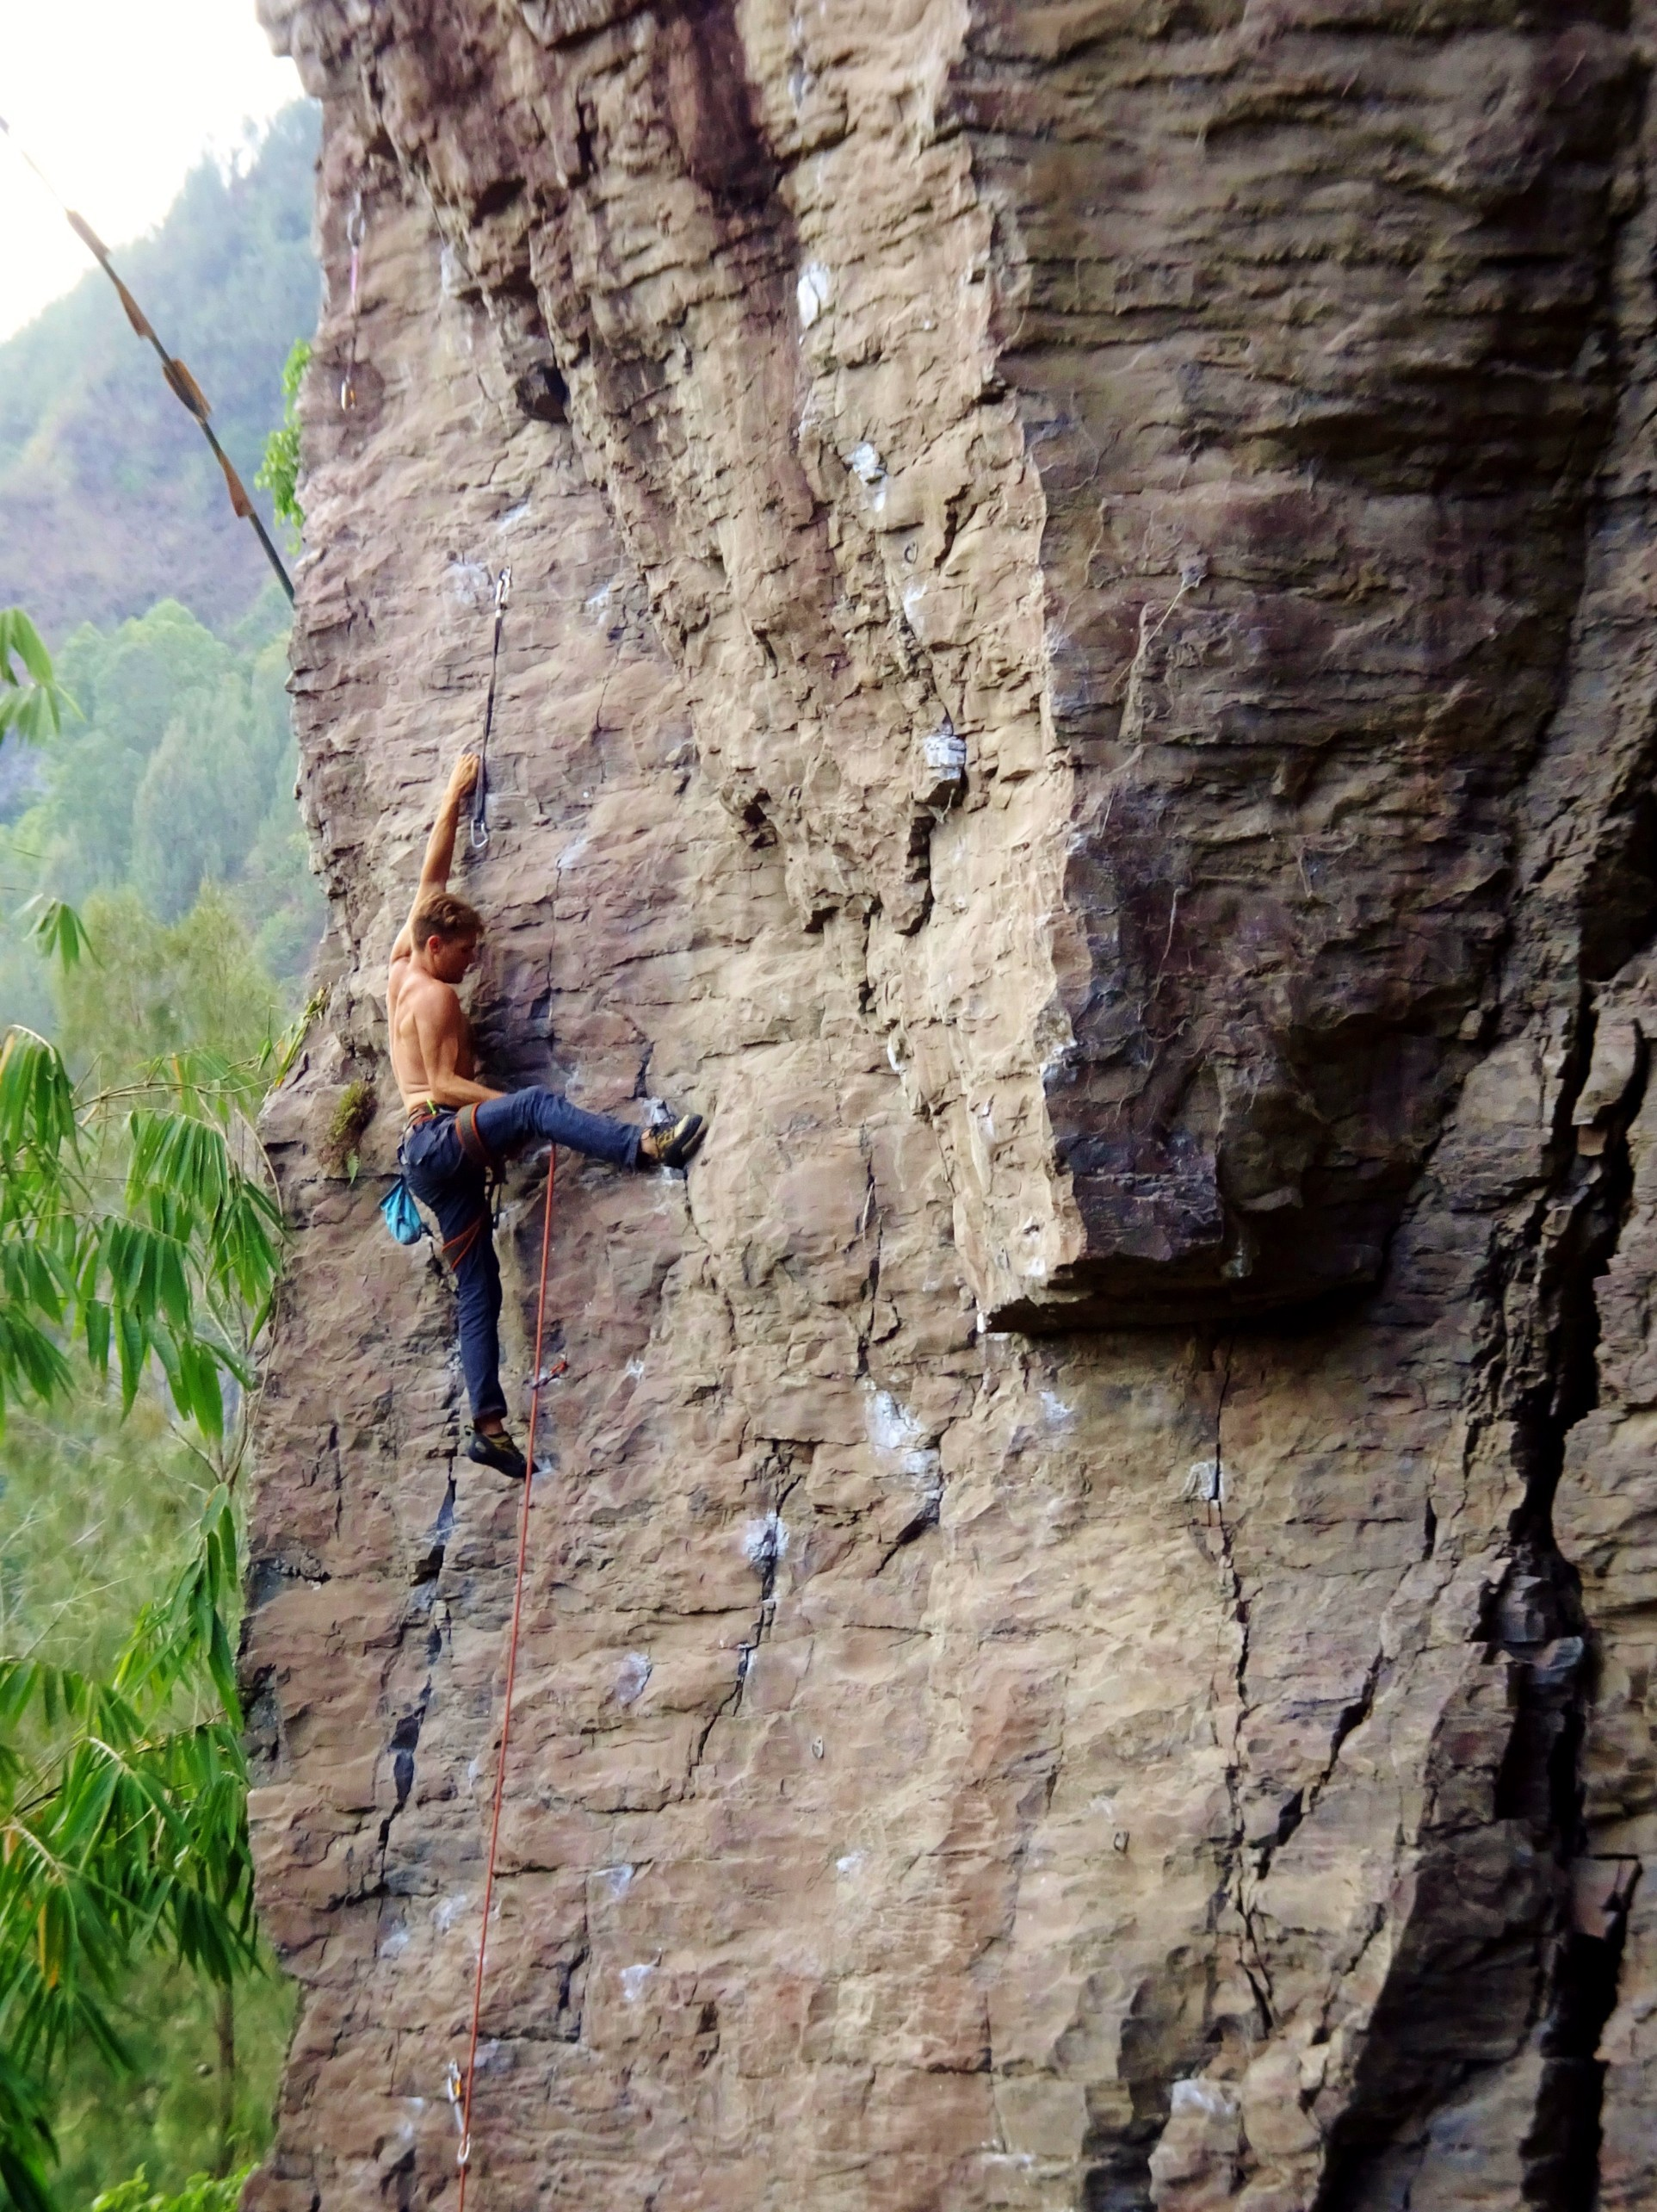 Rock Climbing In Bali This Is A Post Written Out Of A Pure By Jack Lyons Adventure In My Veins Medium